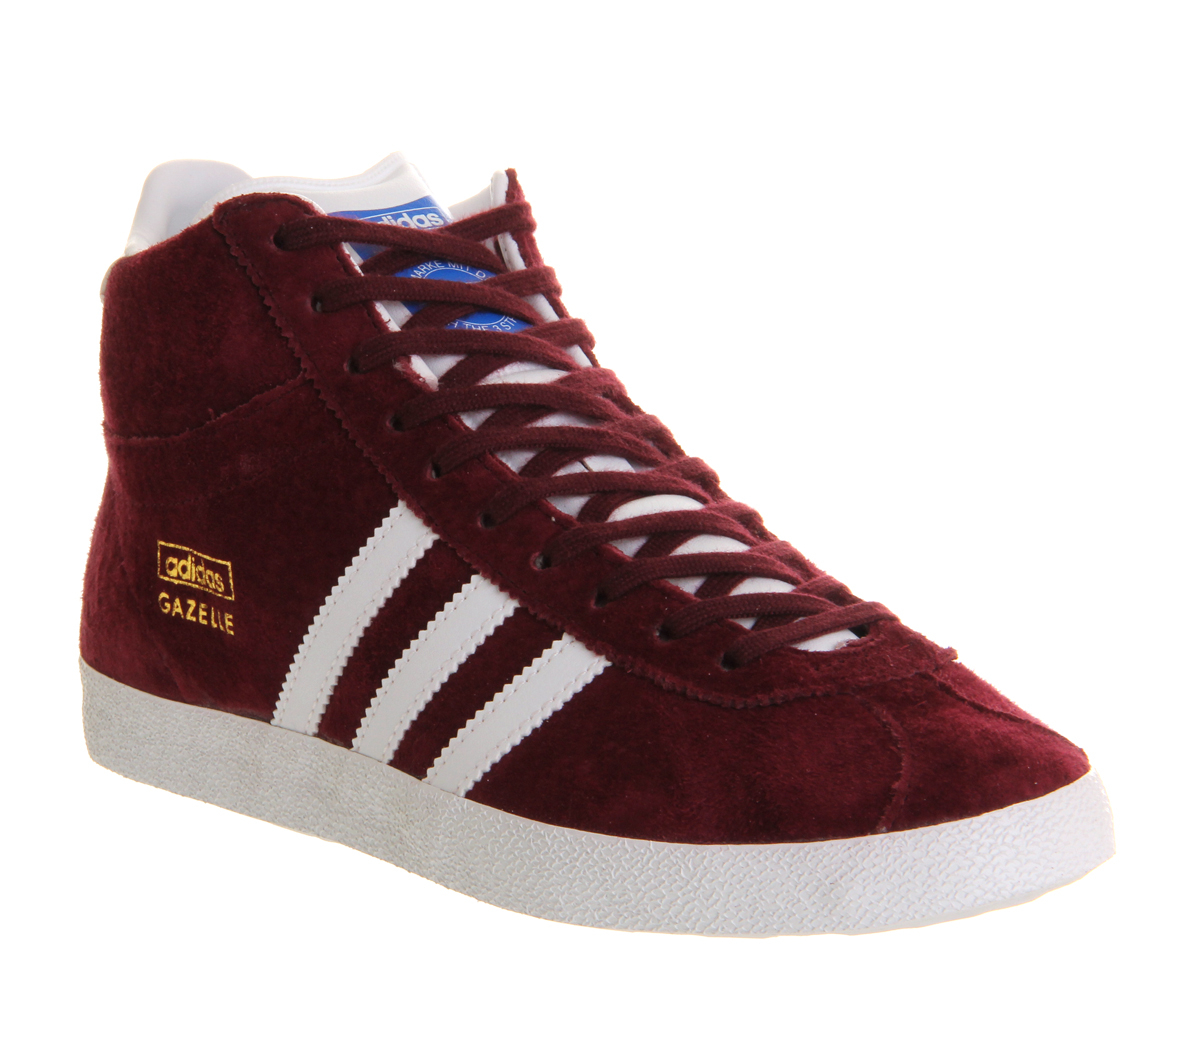 Adidas Mid Rise Shoes